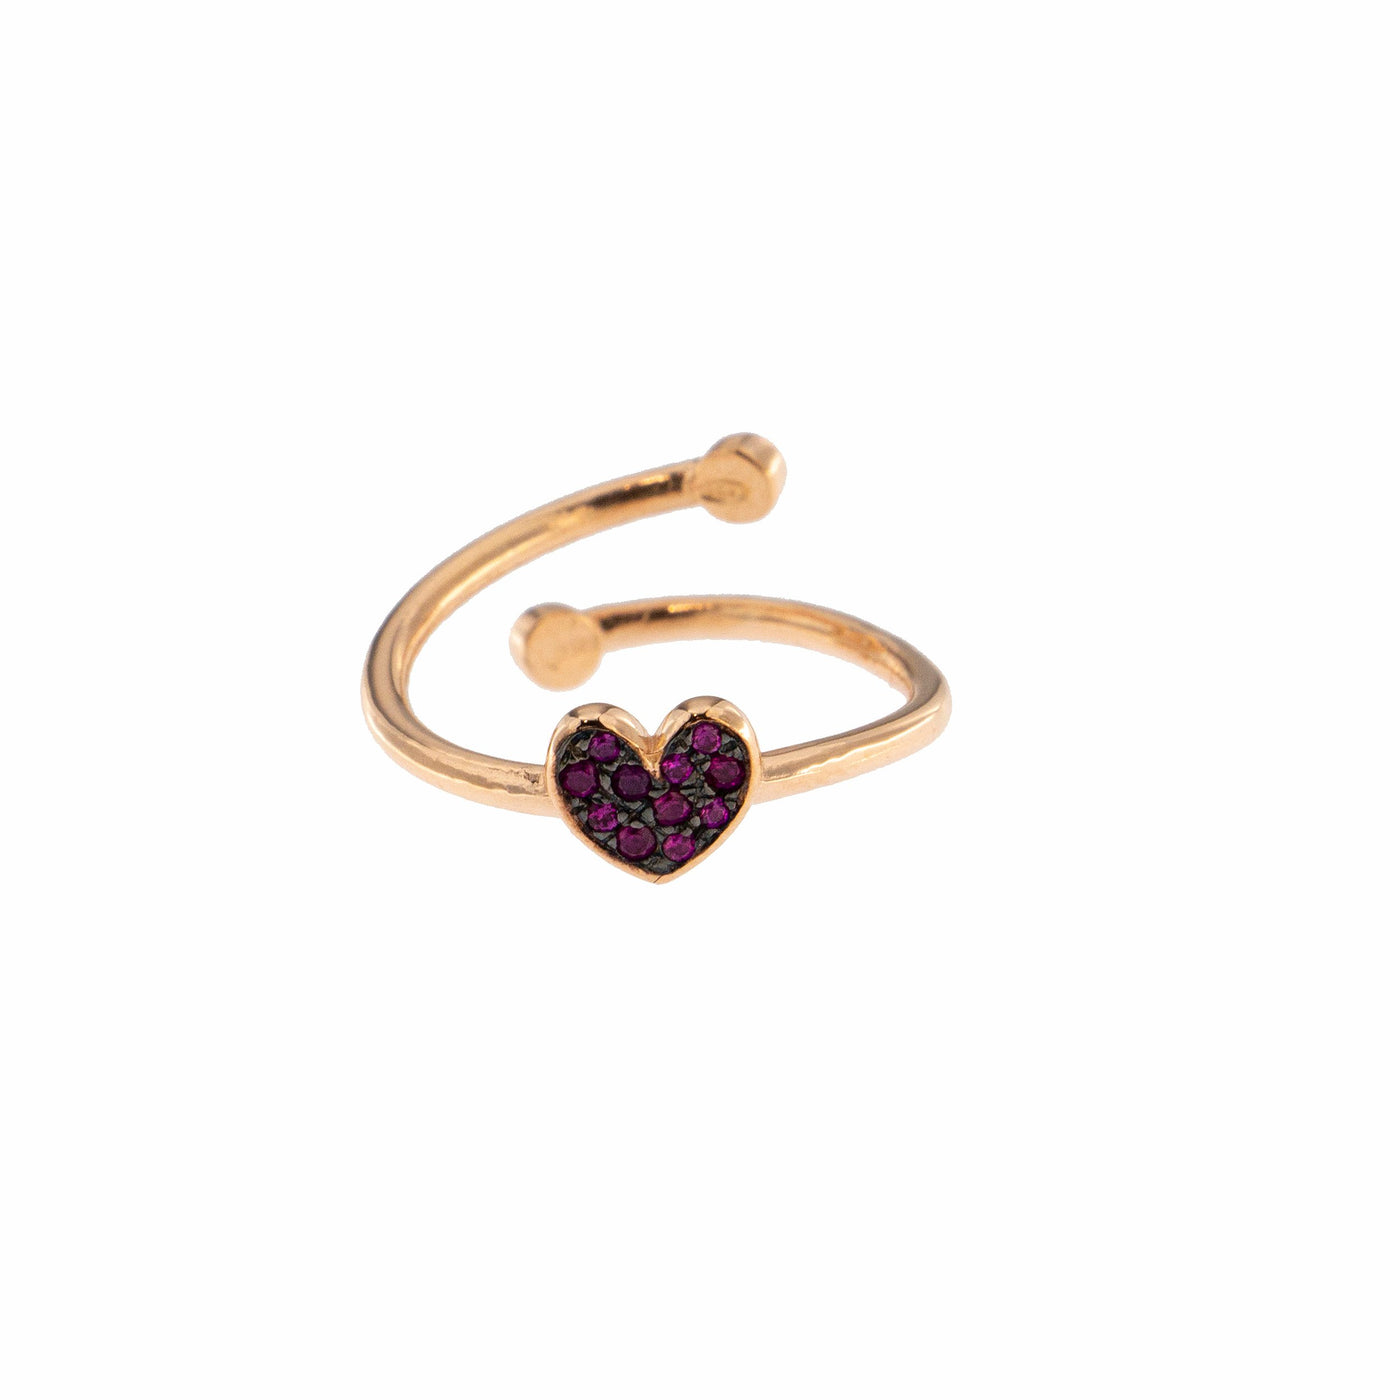 Rings - Zirconia Cubic Heart Ring - 1 | Rue des Mille